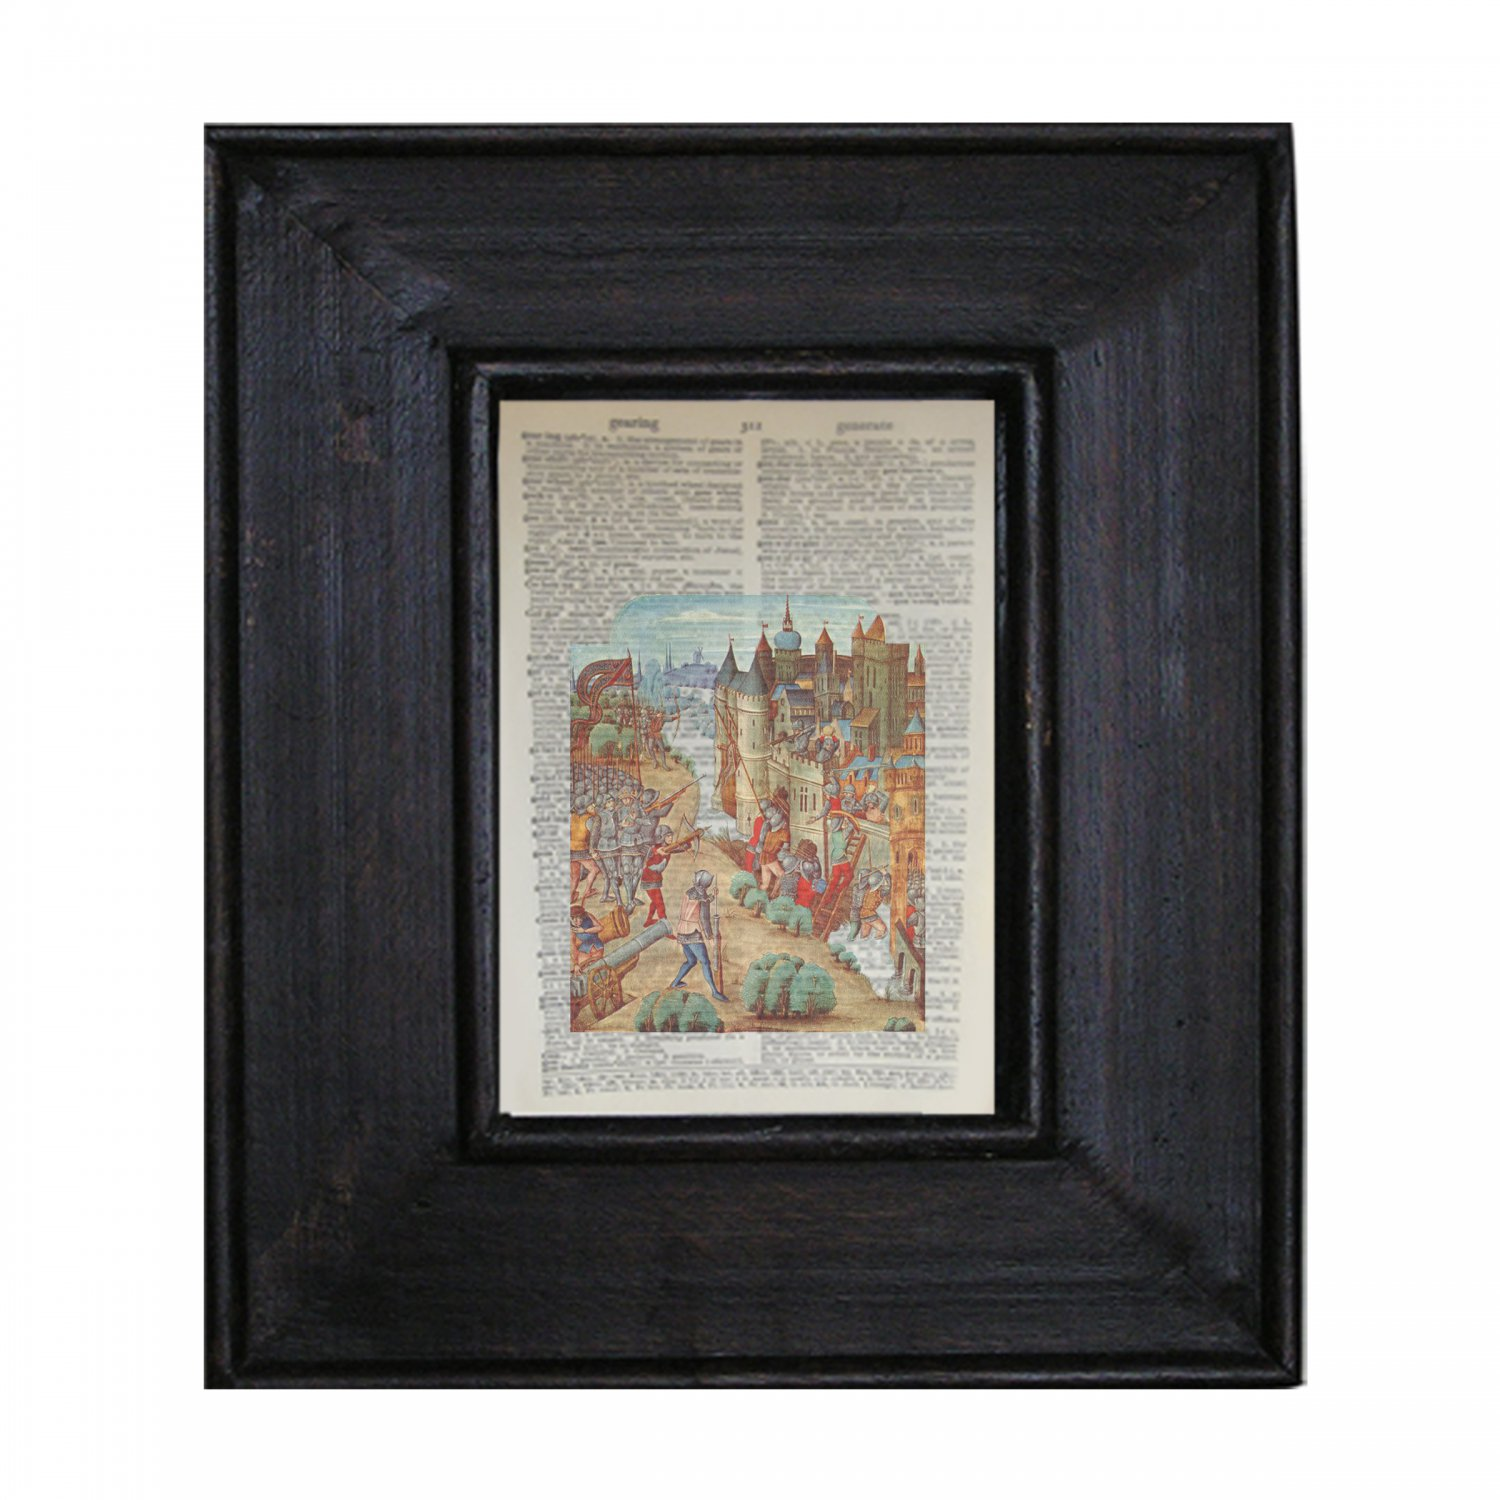 Vintage Illustration and Antique Book Pages Make Stunning Wall Art